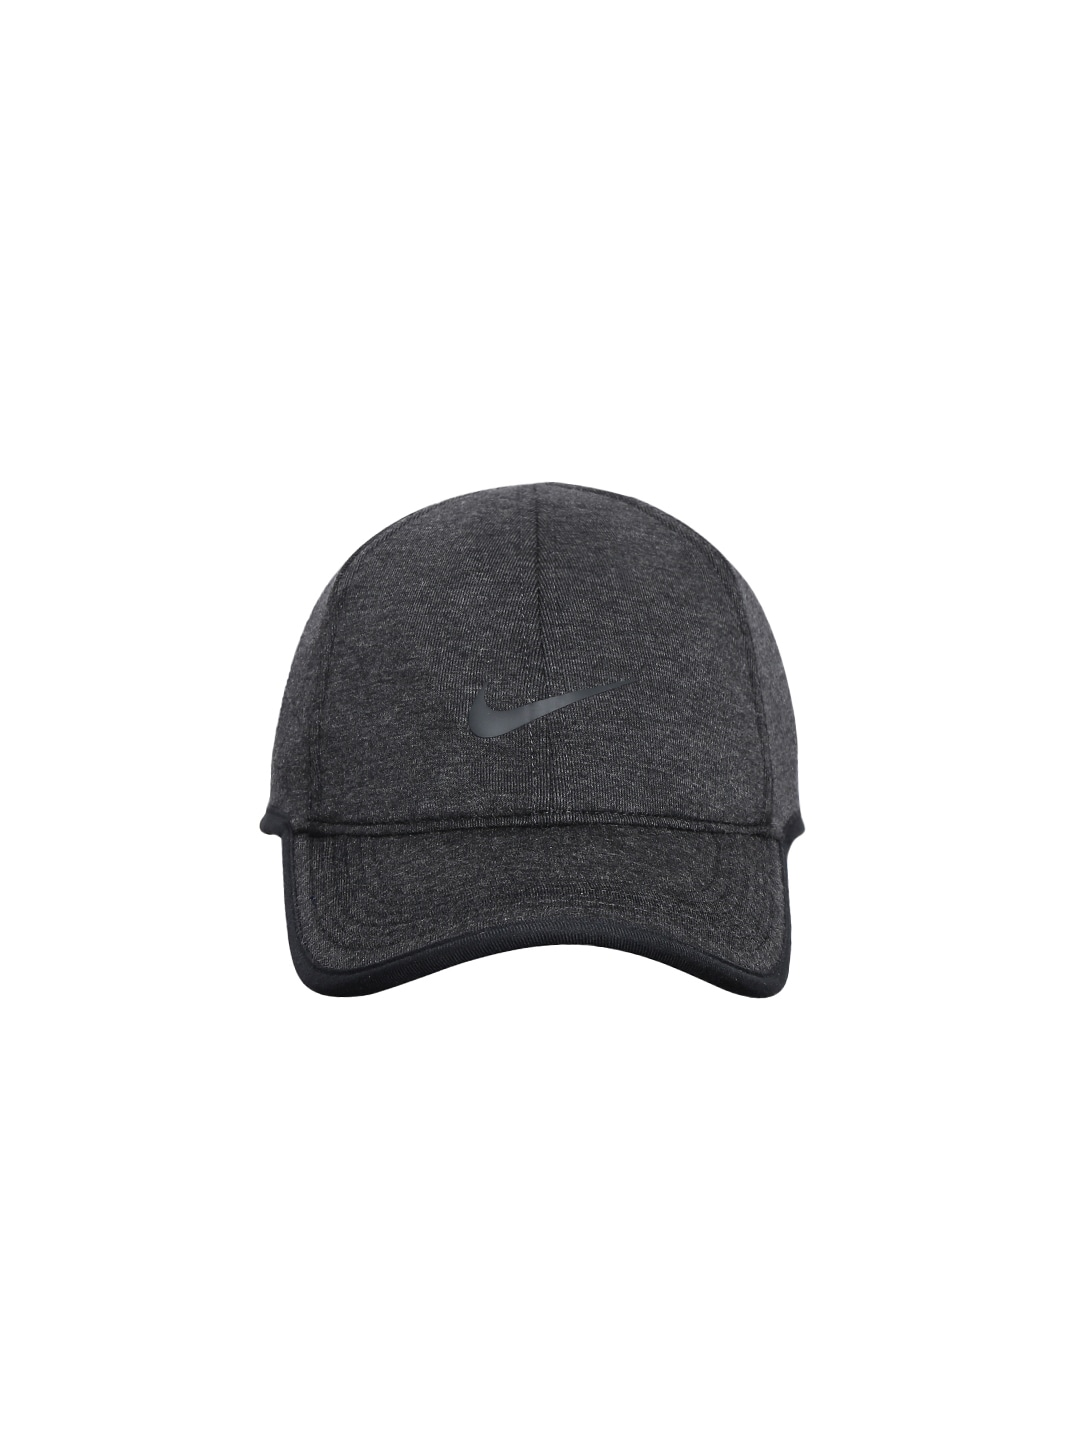 01717 729c5  canada nike cap buy nike caps for men women online in india  myntra 7941d 90a61 02d402c8f384